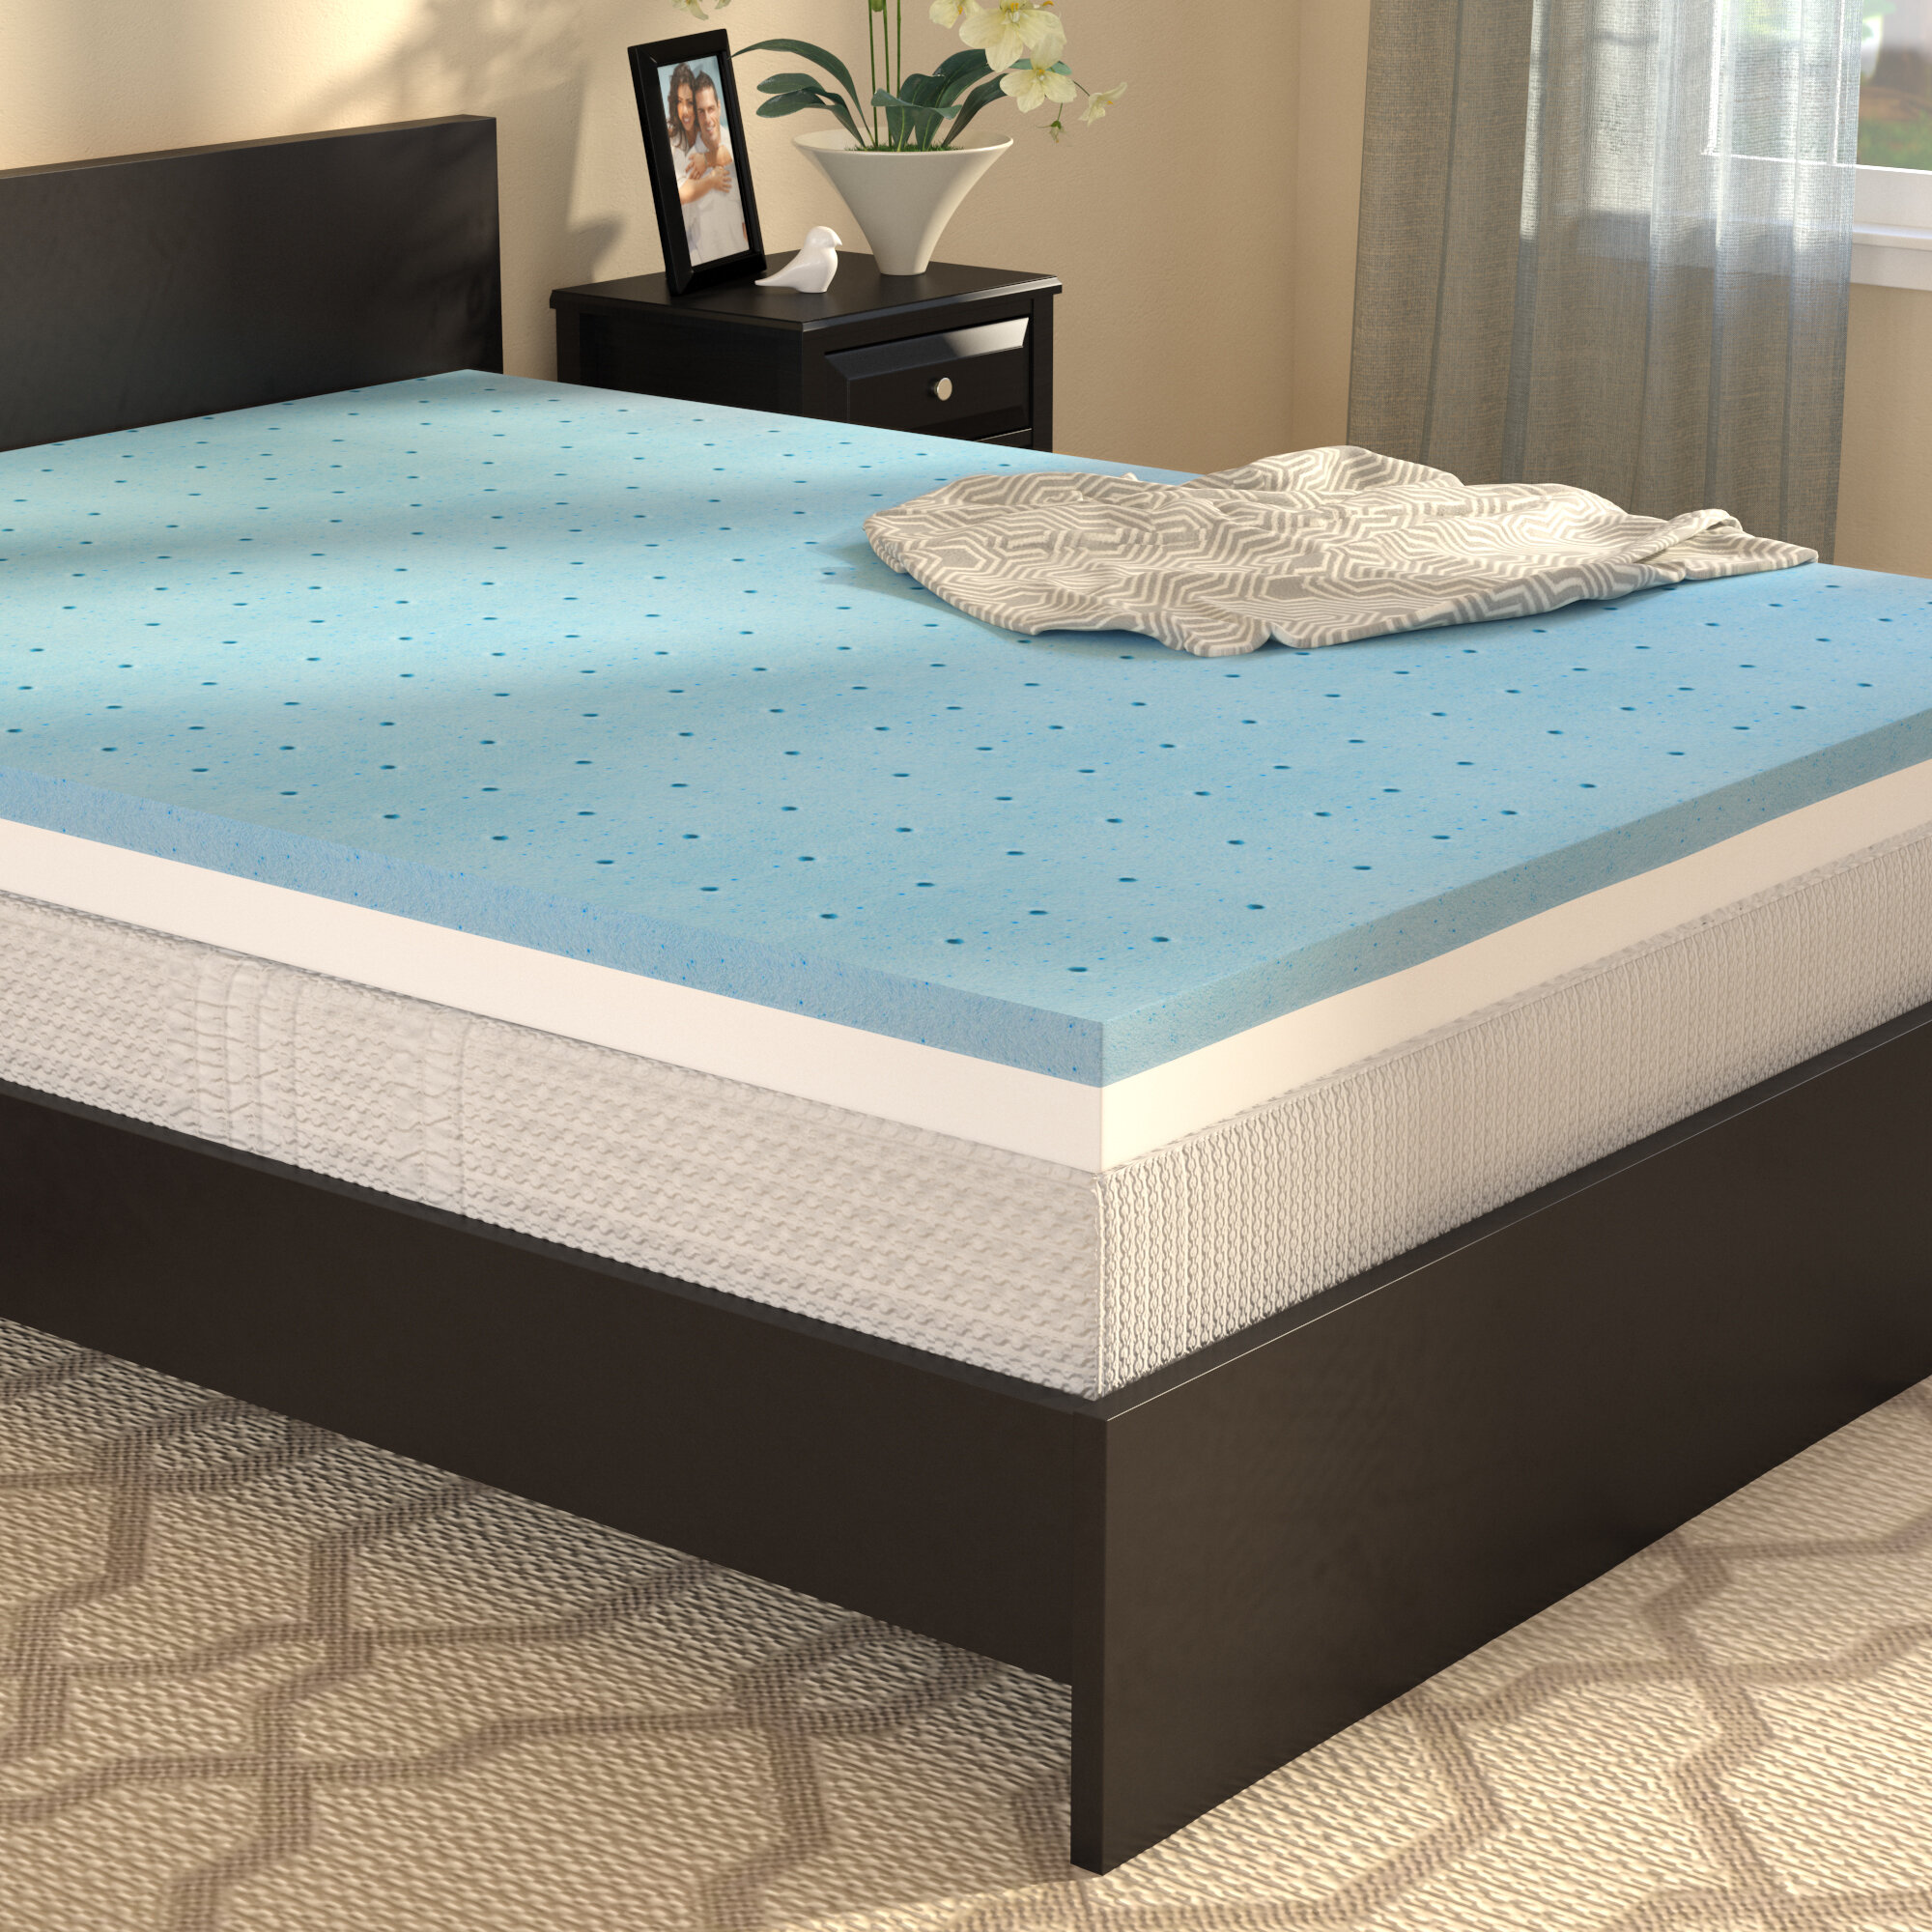 pcok co topper gel foam mattress memory sw queen